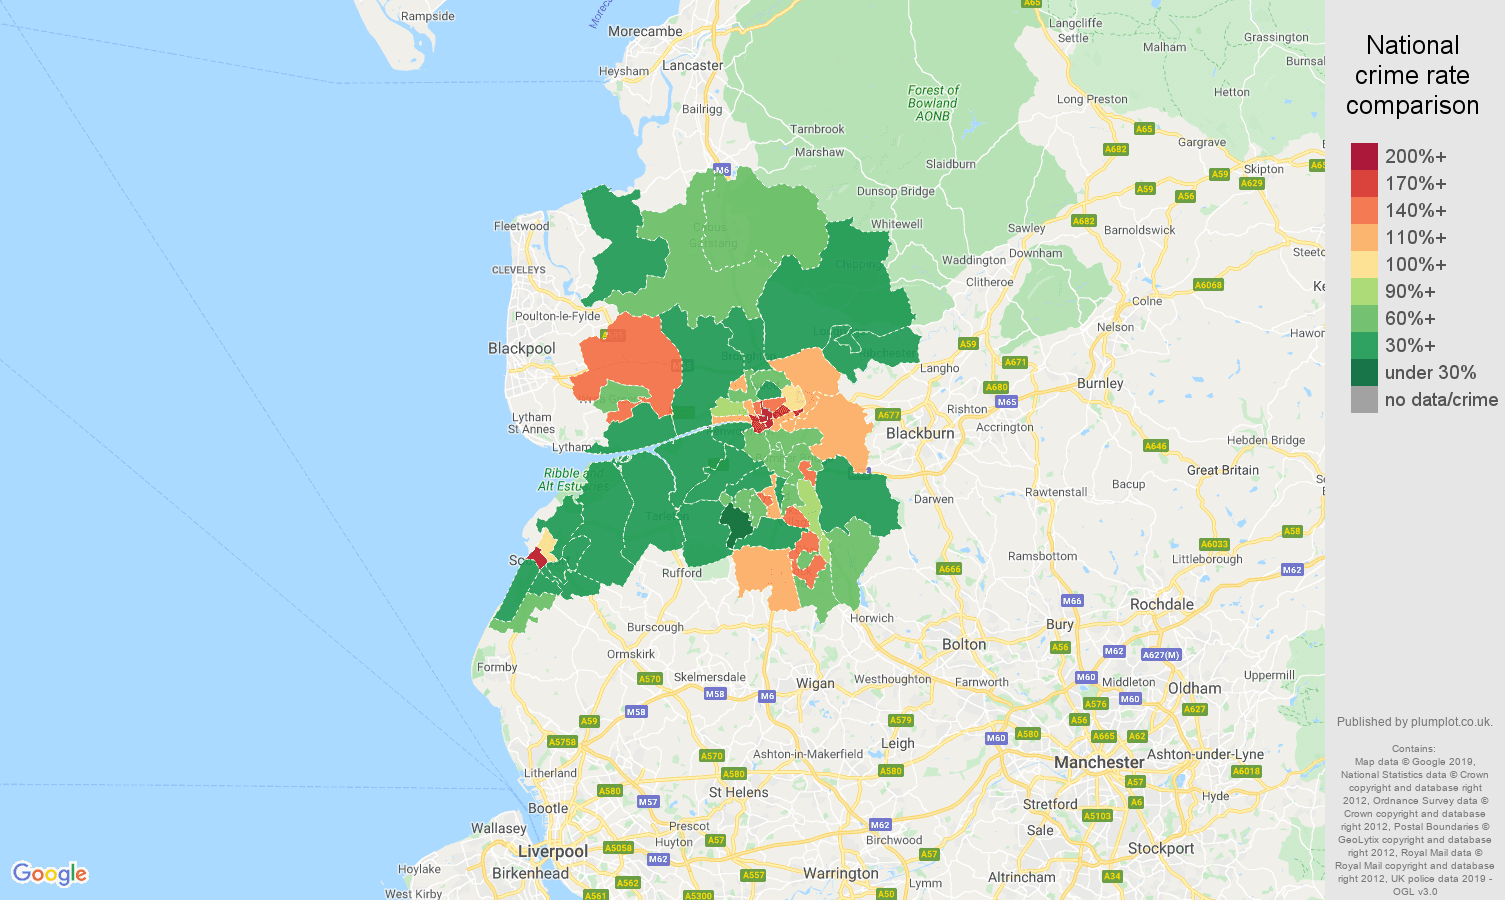 Preston other theft crime rate comparison map